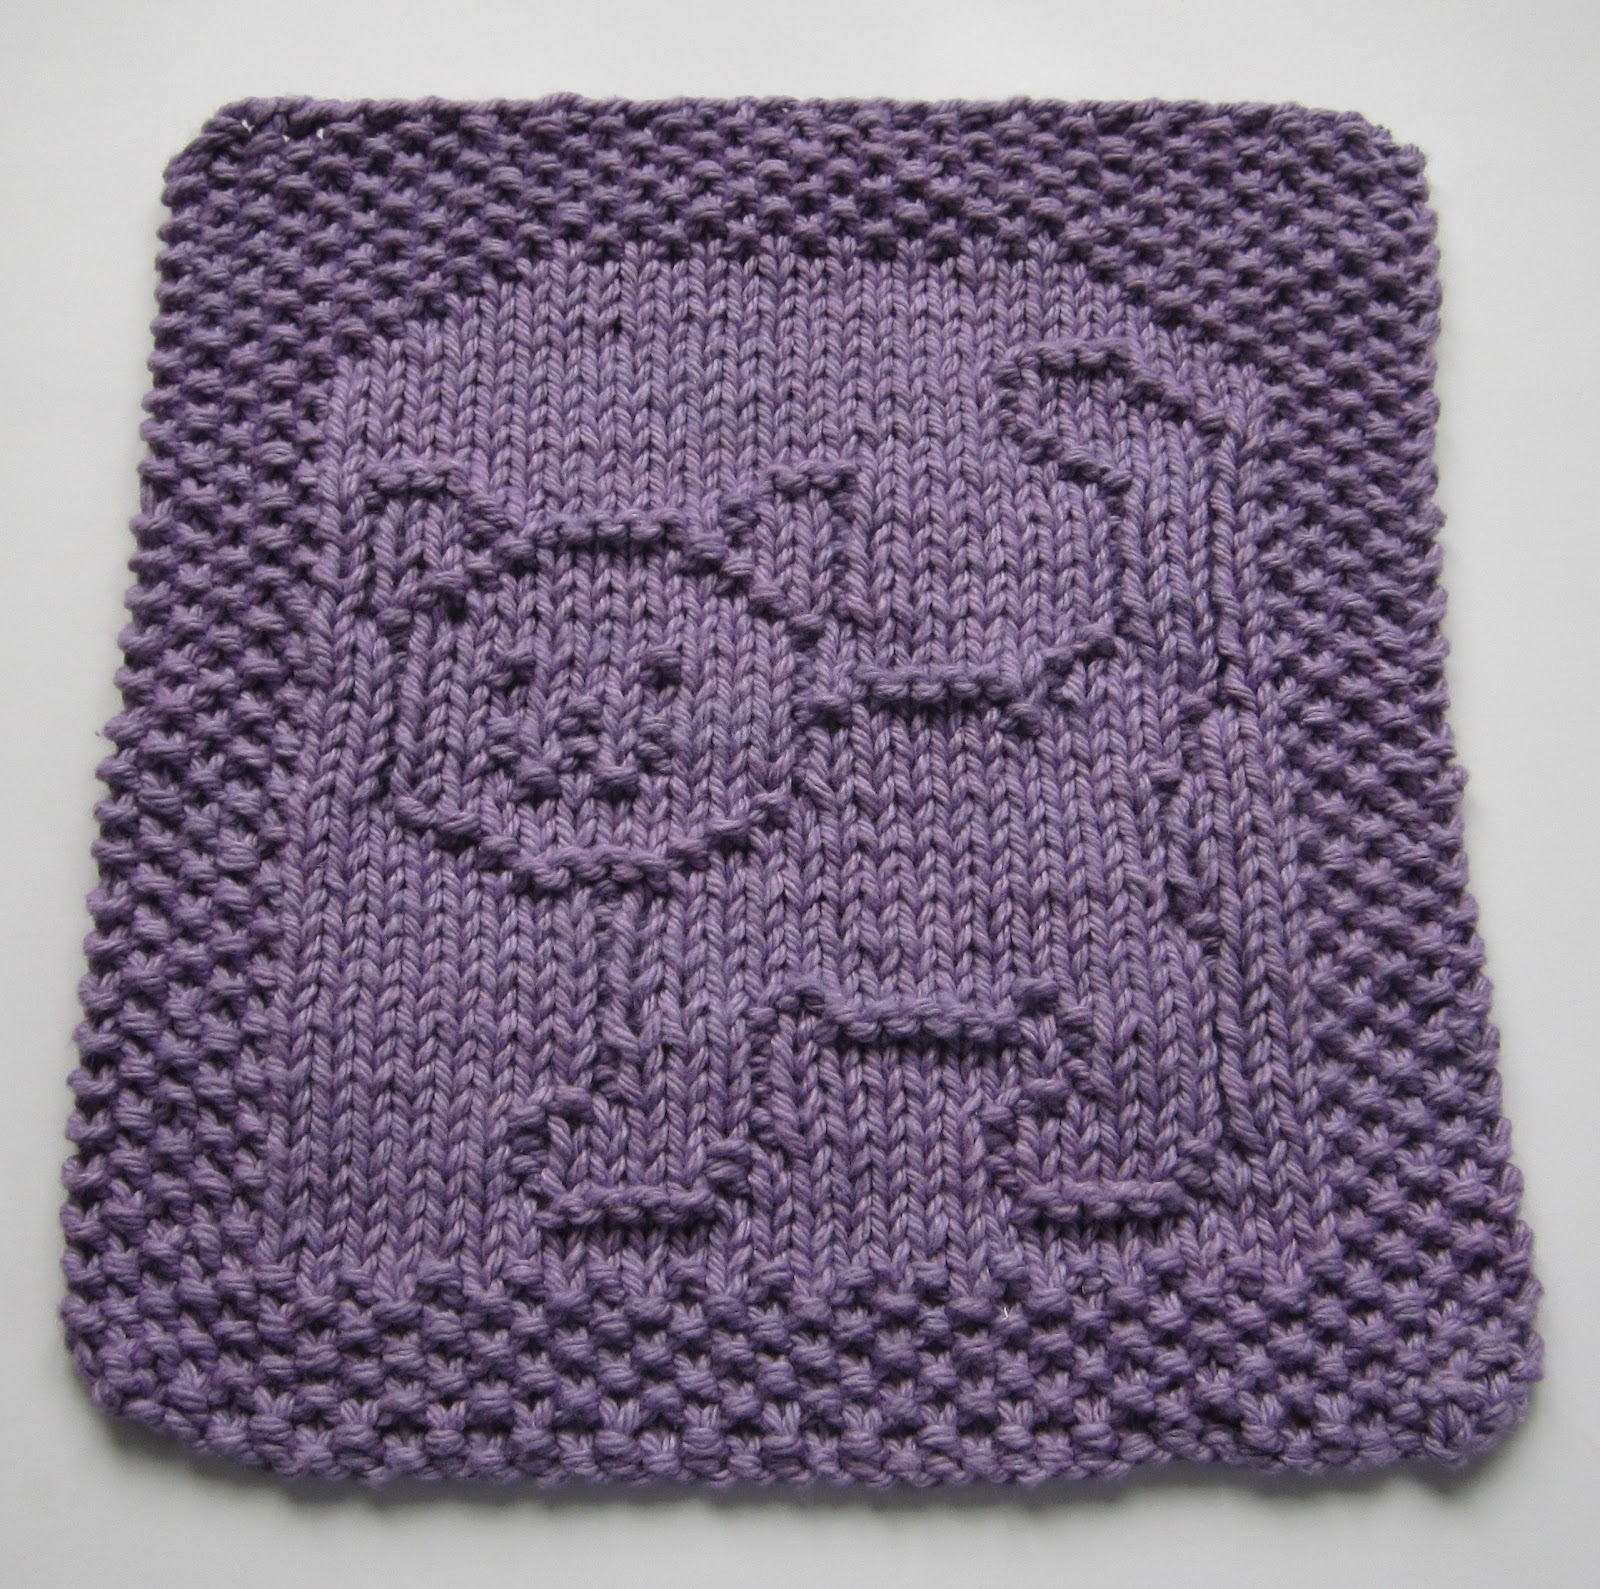 Free Knitting Patterns Dishcloths : Free Dishcloths Washcloths Knitting Patterns 2016 Car Release Date